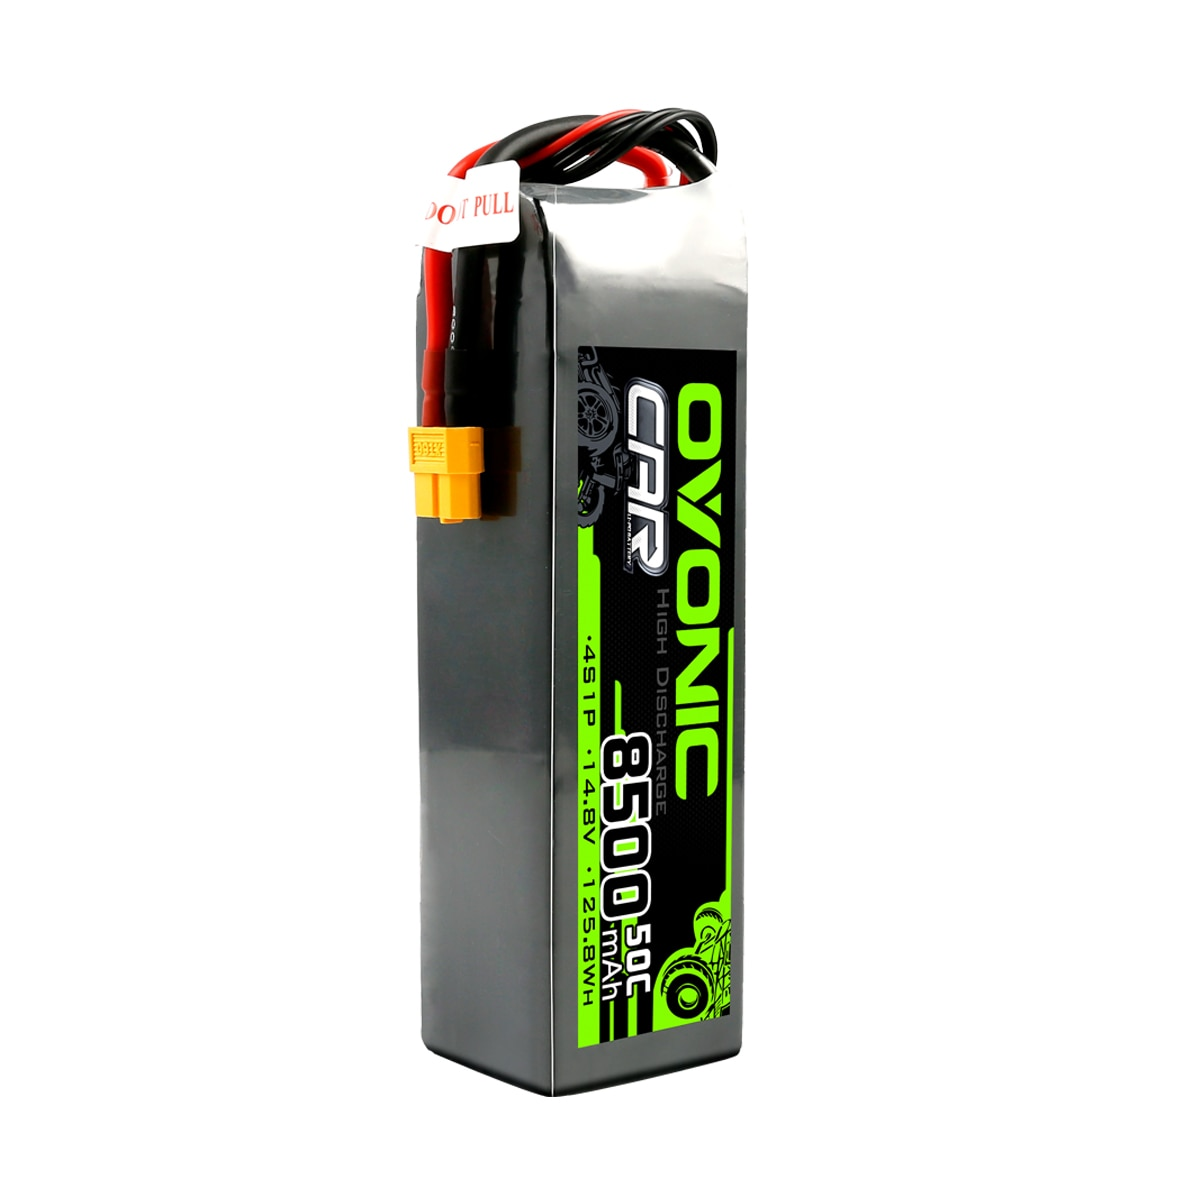 Ovonic 8500 Lipo Batteries 50C 4S 14.8V LiPo Battery With XT60 Plug For Xmaxx 8S RC Car Truck